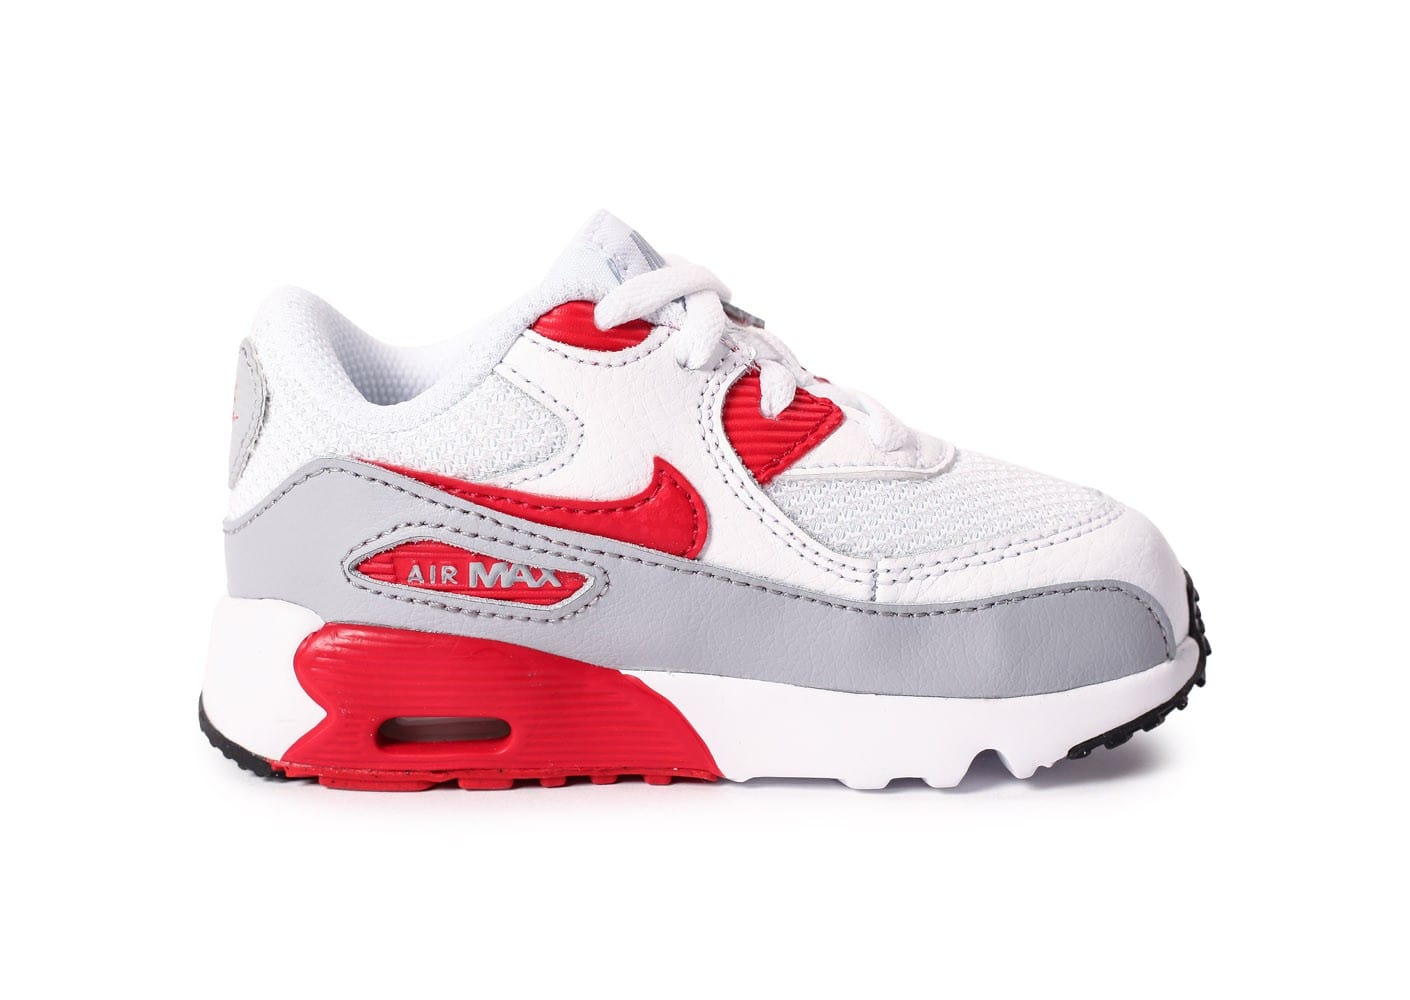 low priced b9094 d8e4f Basket Bébé Air Max 90 Blanc 408110 154 Noir Rouge - 21 NO0981 Nike Air Max  90 2015 Femme Véritable 90 Homme Paris Saint Germain bleu ...